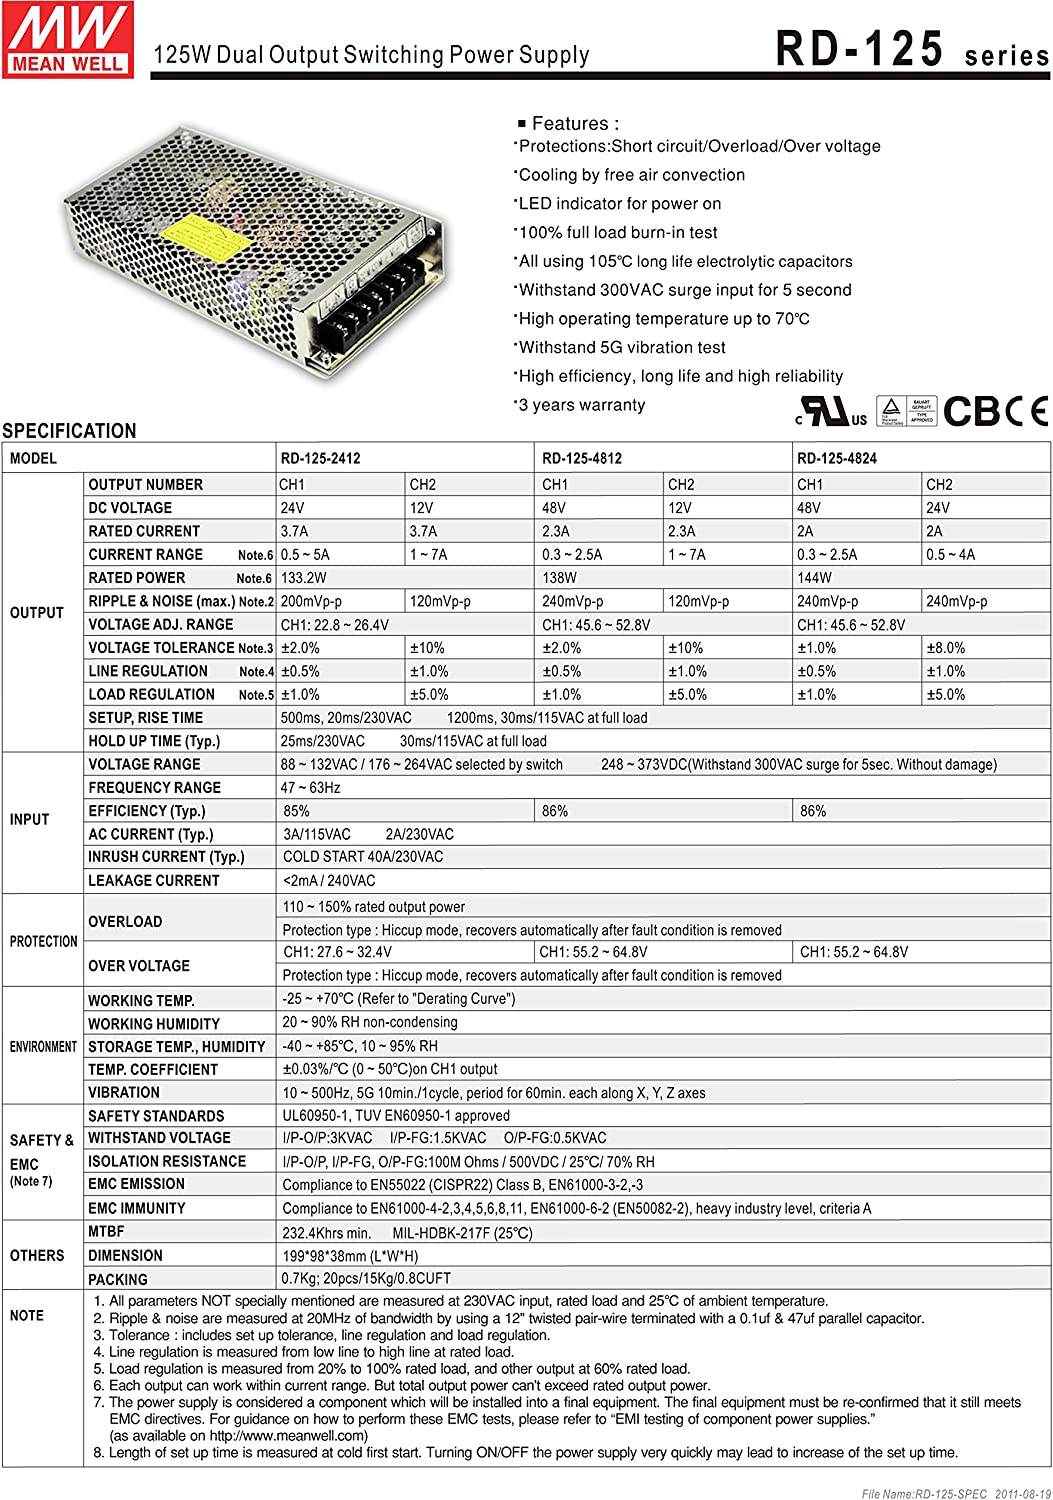 MW Mean Well RD-125-1224 12V//24V 3.7A 132W Dual Output Switching Power Supply